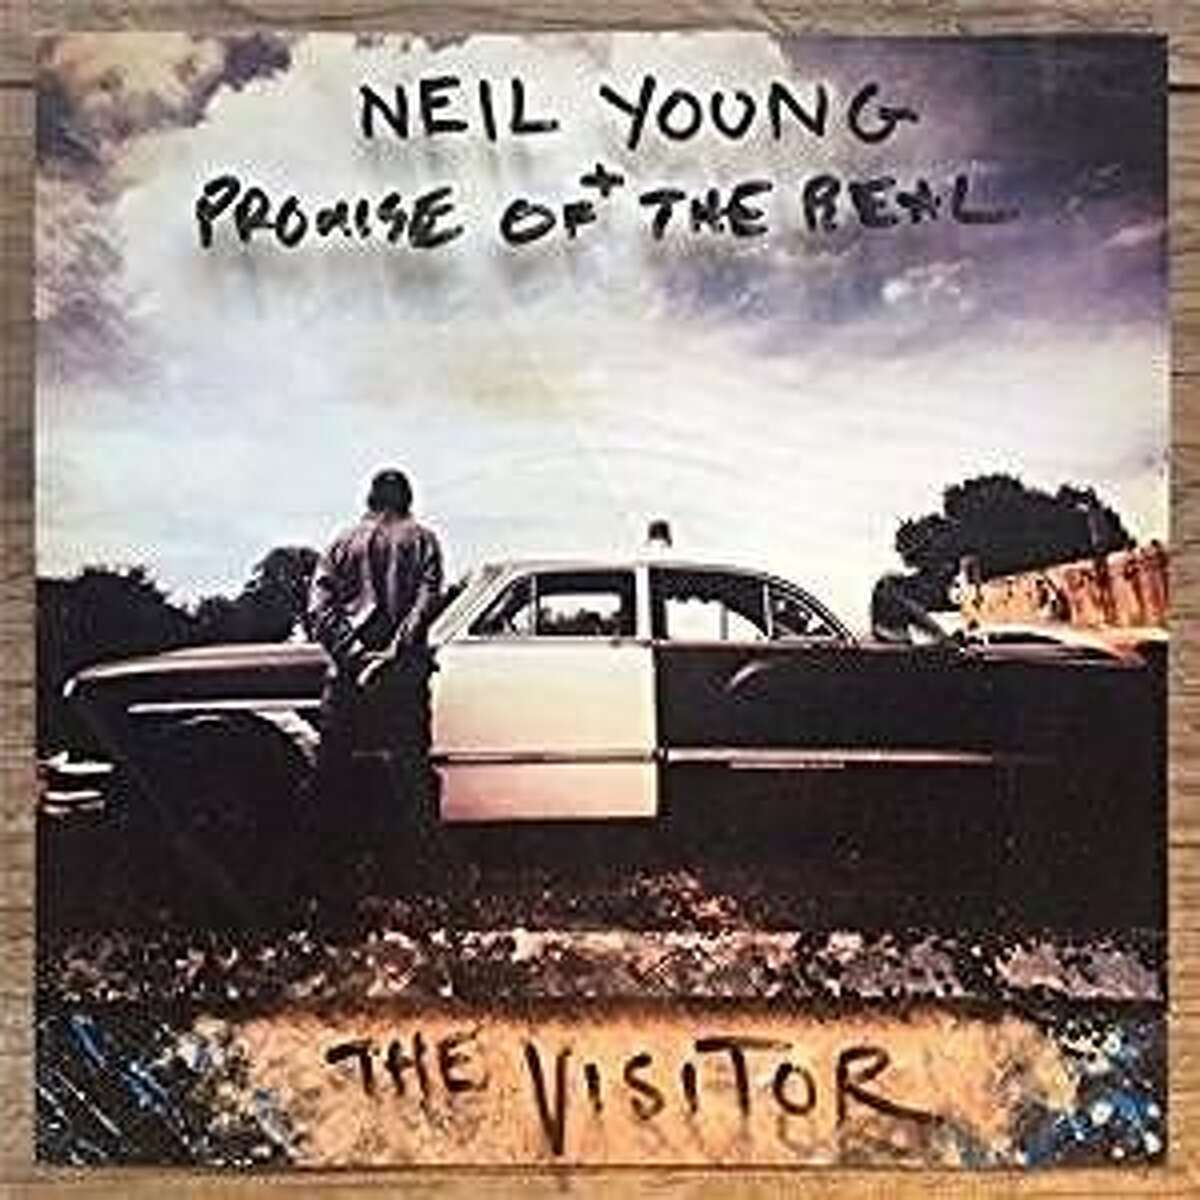 """CD cover: """"The Visitor"""" by Neil Young & the Promise of the Real"""